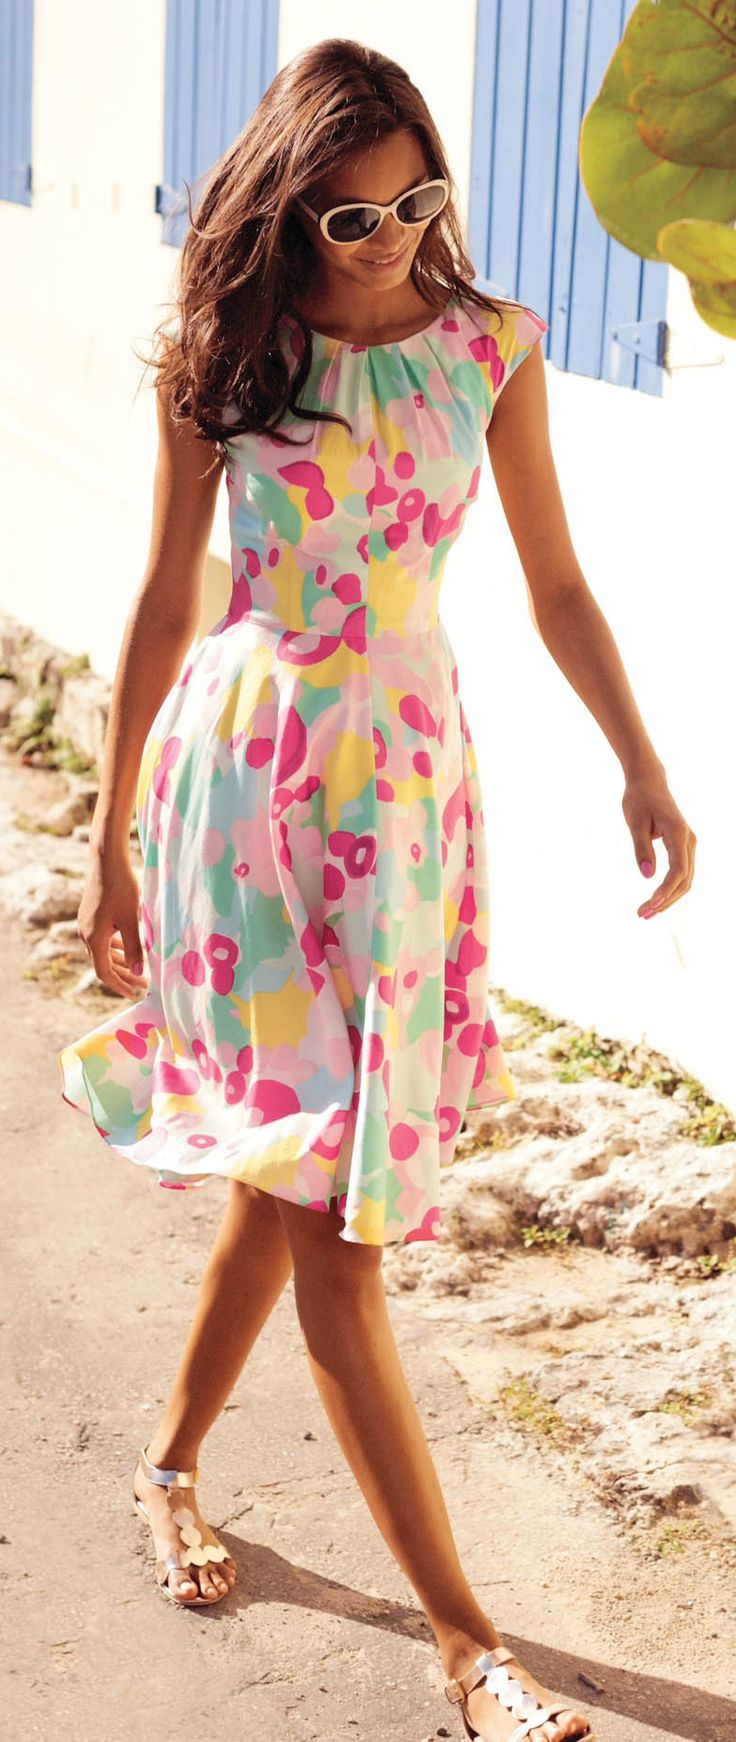 Summer trends | Colorful printed midi dress with silver sandals